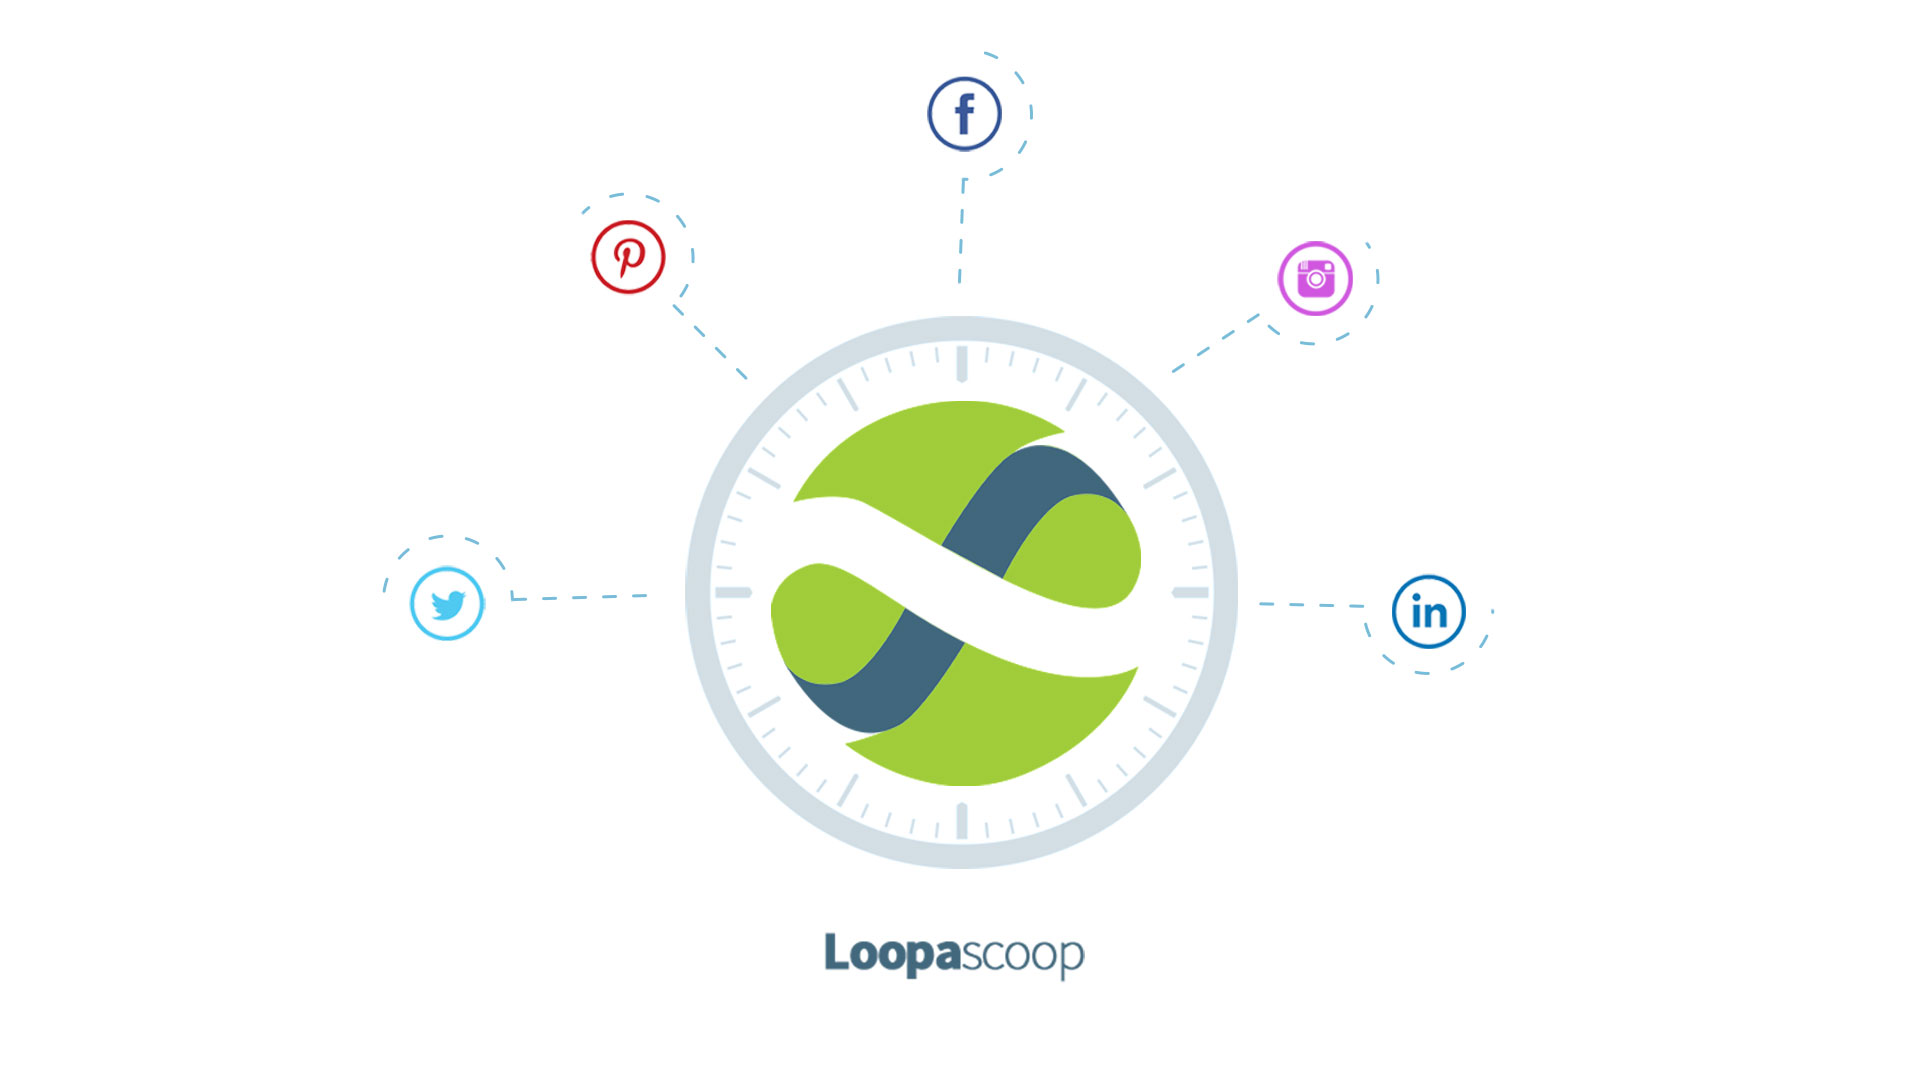 Loopascoop makes it easy for individuals and businesses to schedule social posts, analyse social performance and manage their social accounts from one simple dashboard